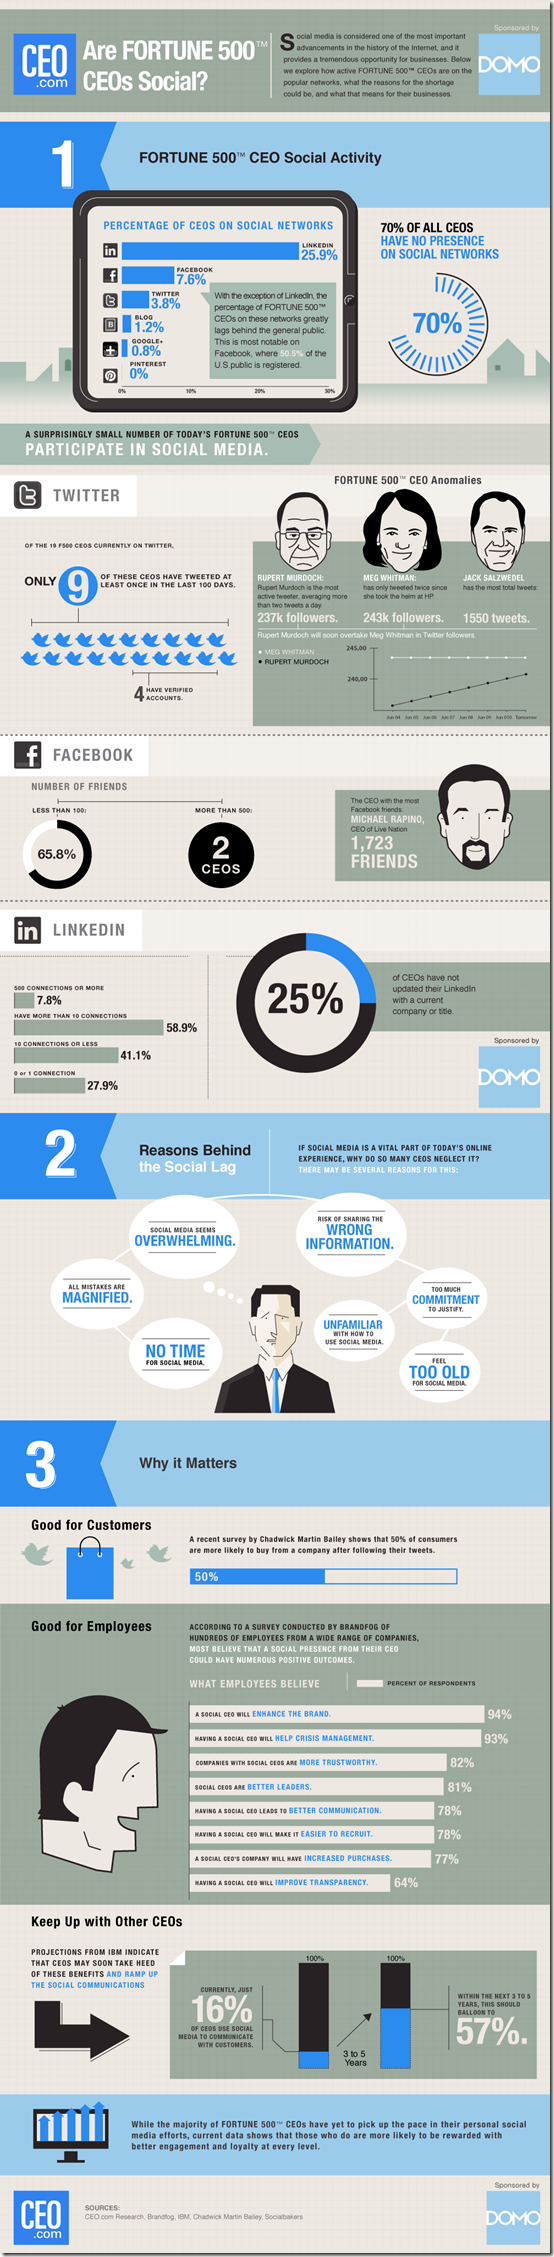 Social-CEO-Index-2012-Infographic